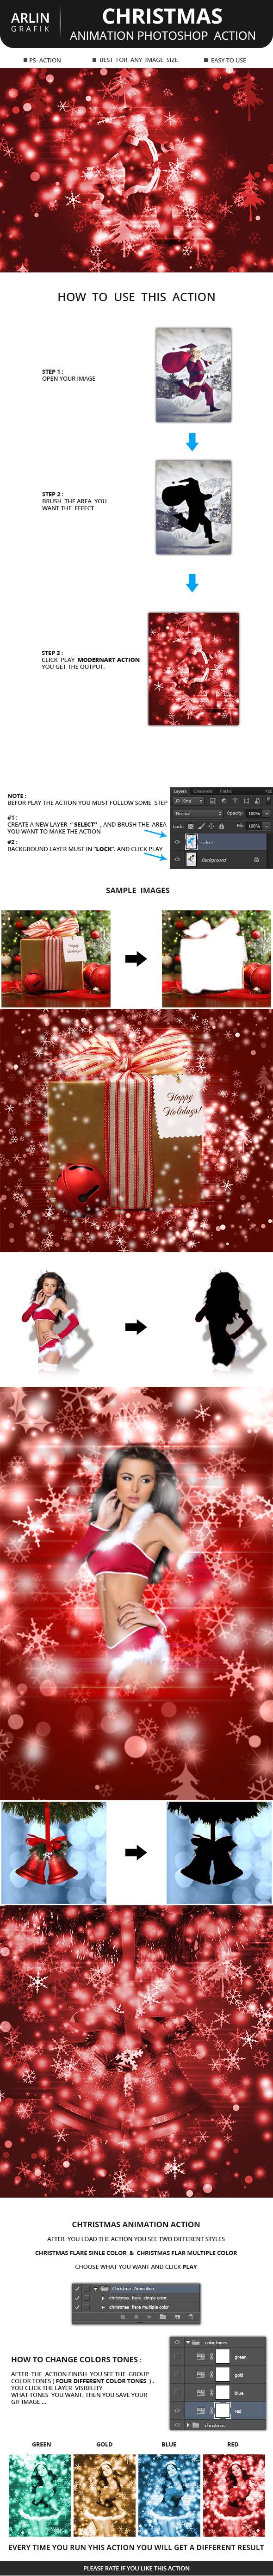 Christmas Animation Photoshop Action - Photo Effects Actions